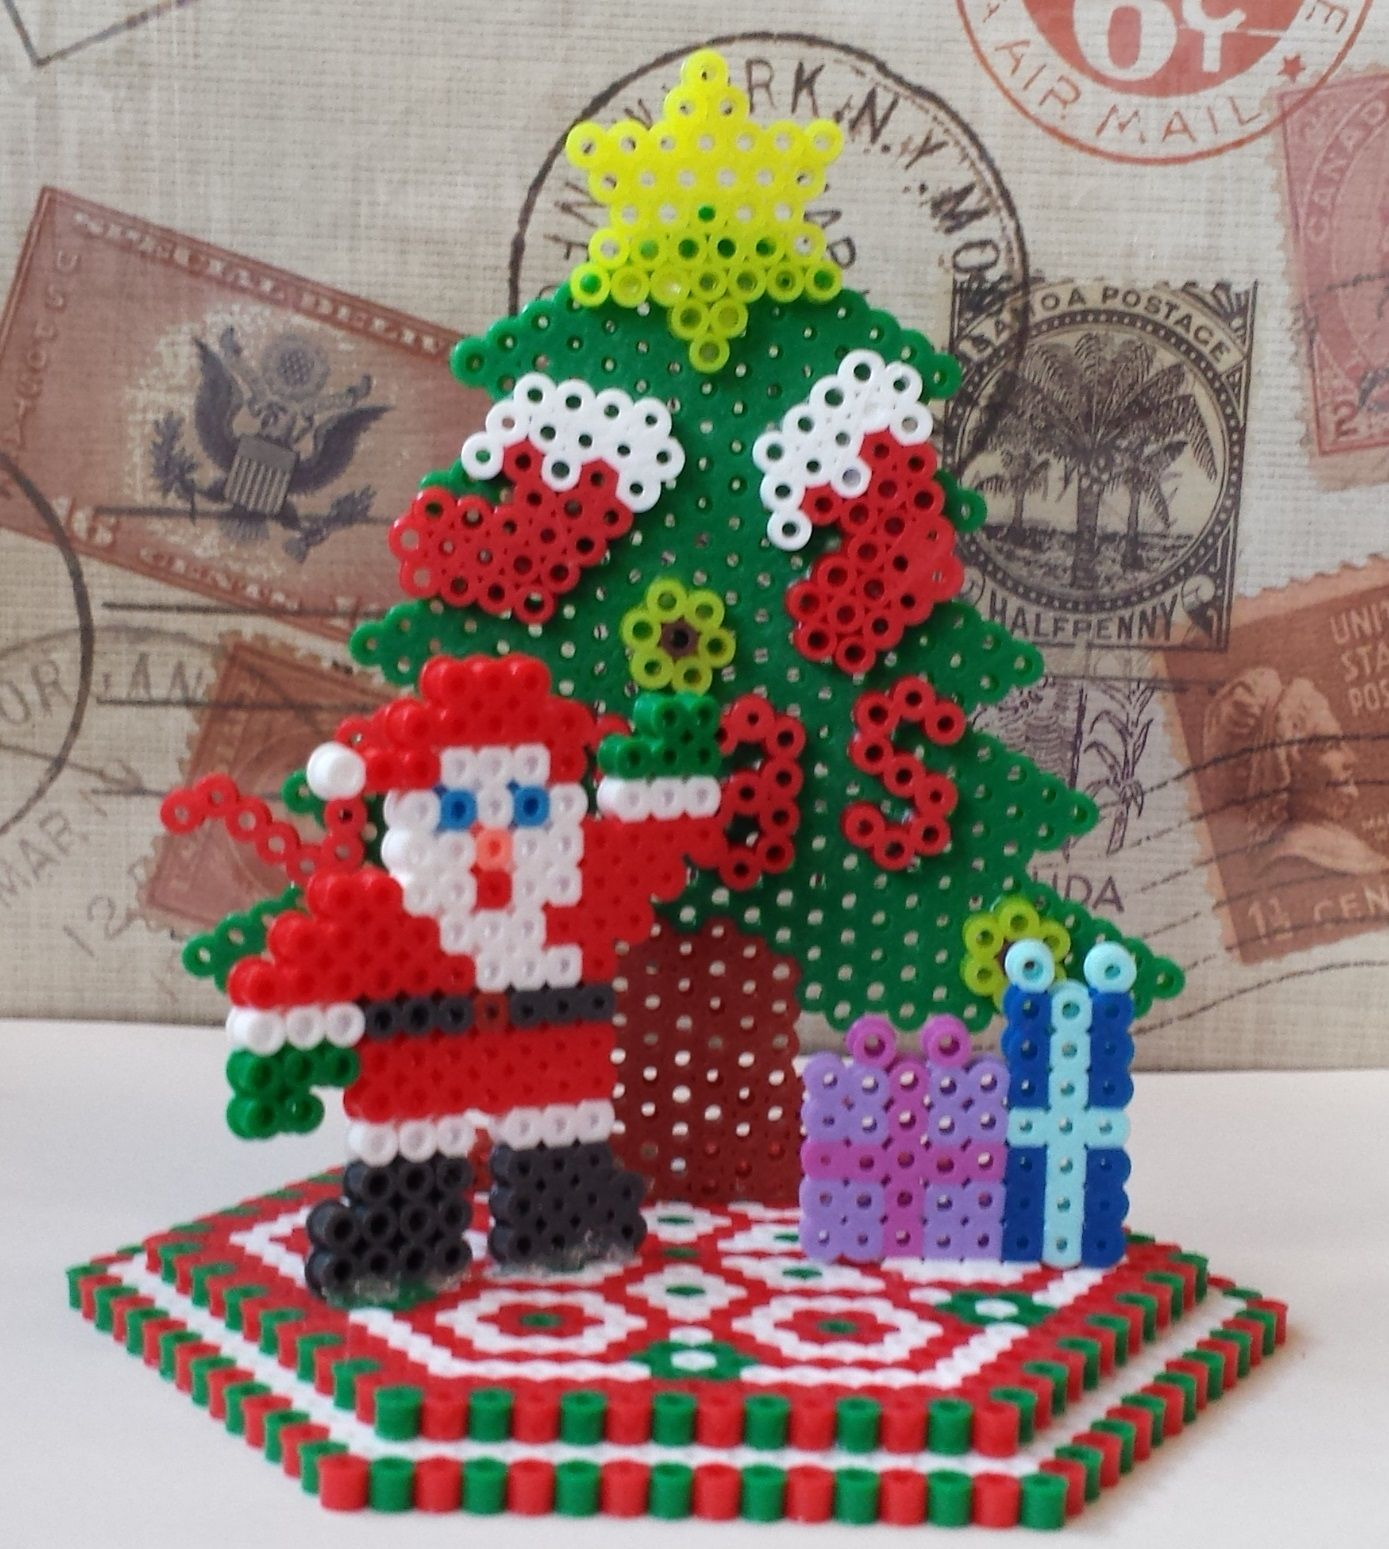 3D Christmas ornament perler beads by Joanne Schiavoni | Perler ...